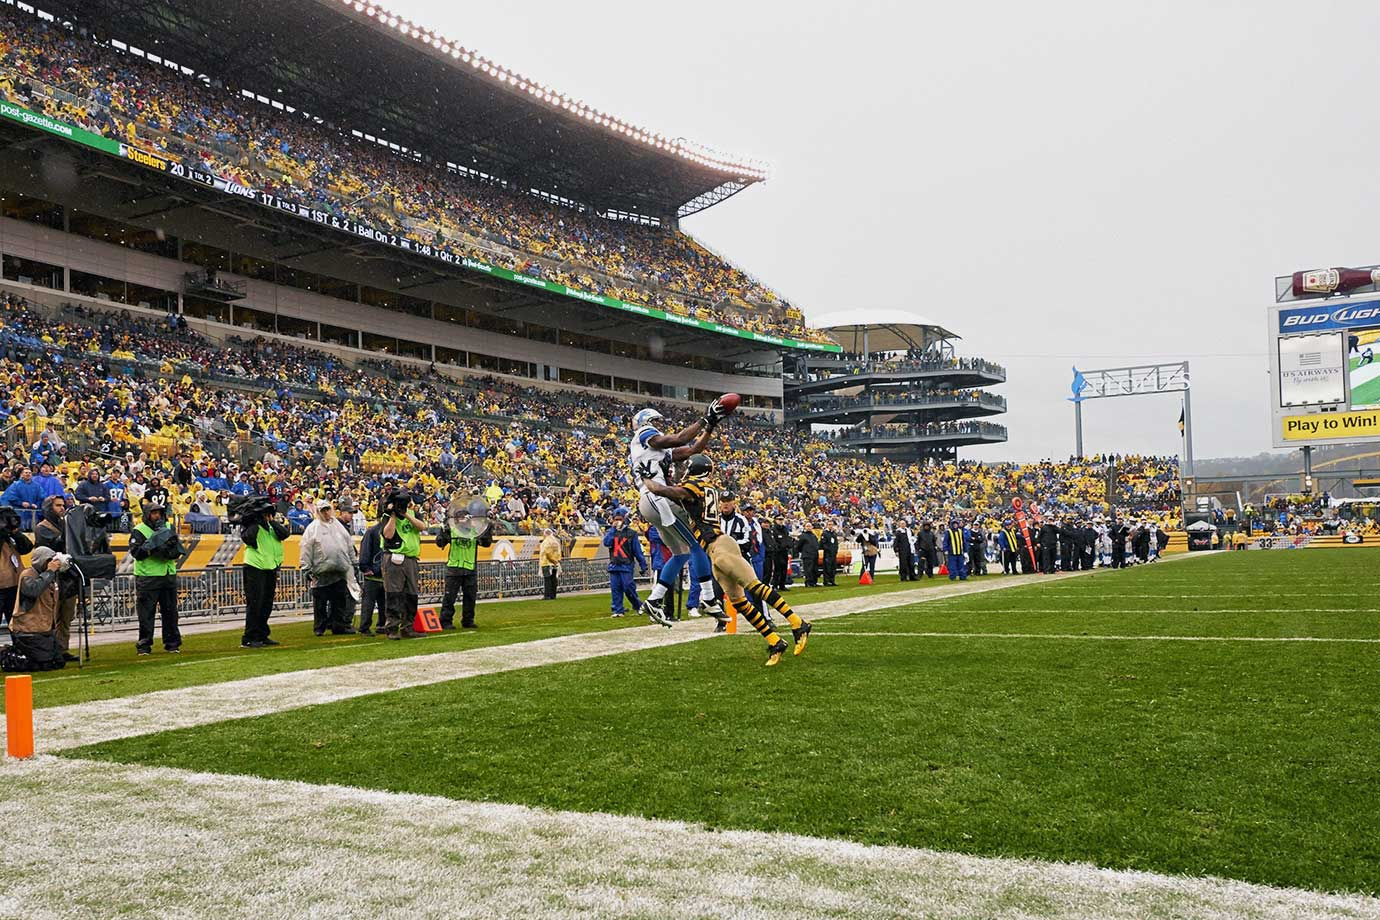 Nov. 17, 2013 — Detroit Lions vs. Pittsburgh Steelers